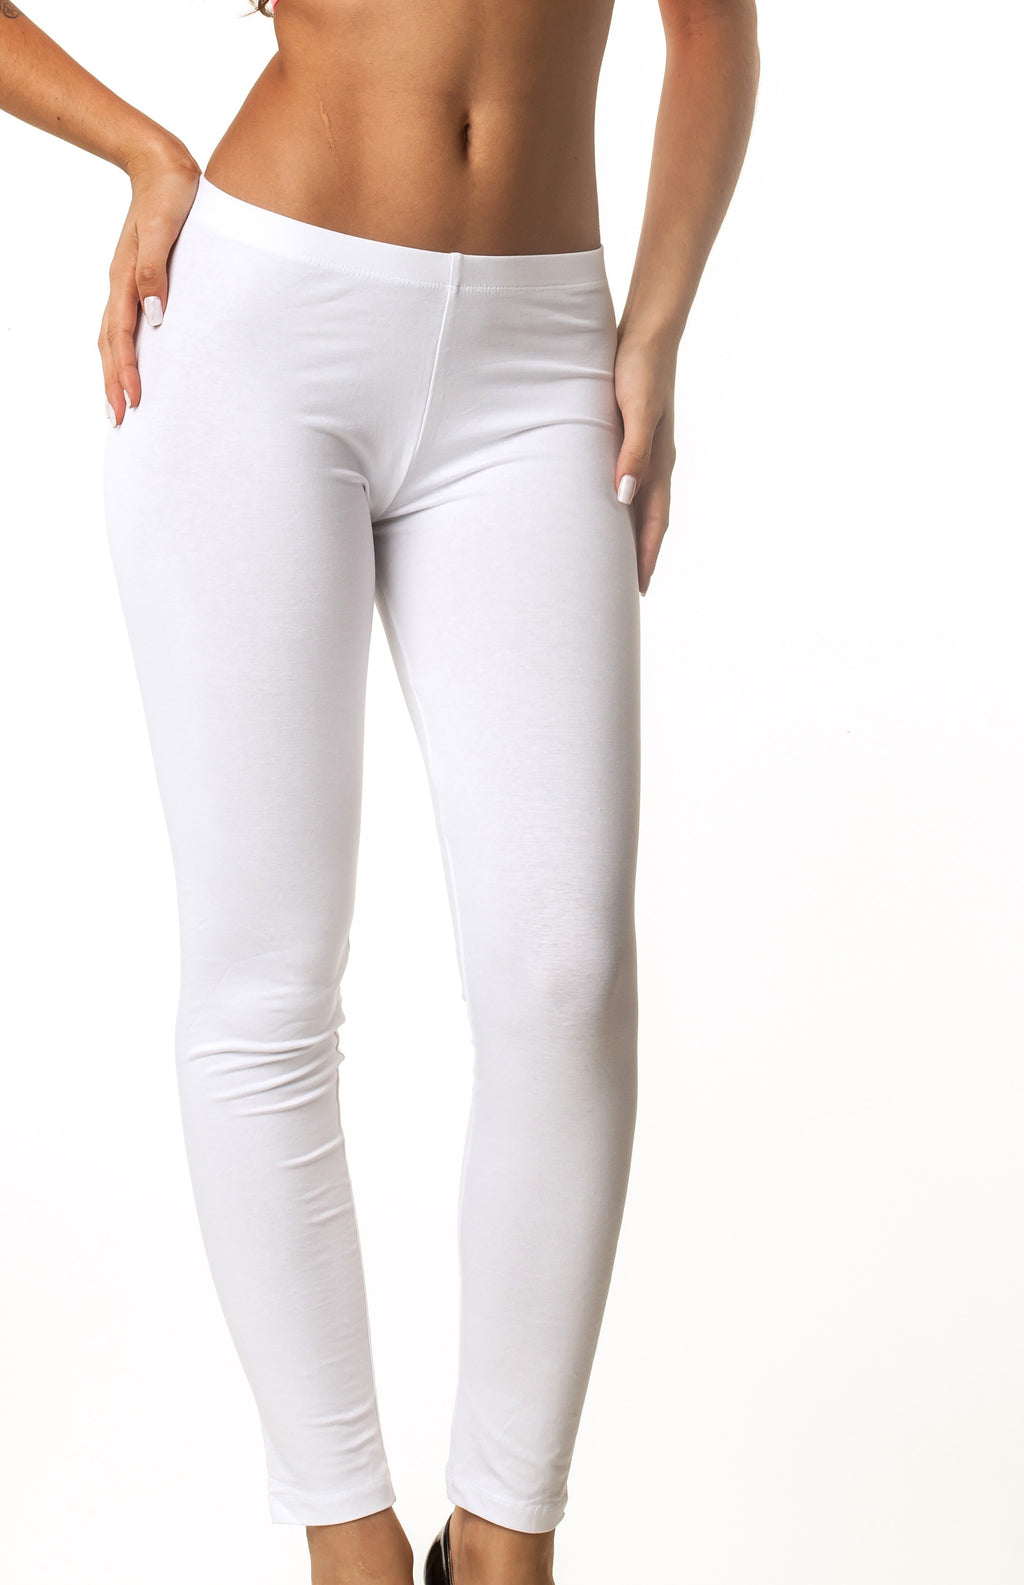 White Full Length Legging Cotton 417